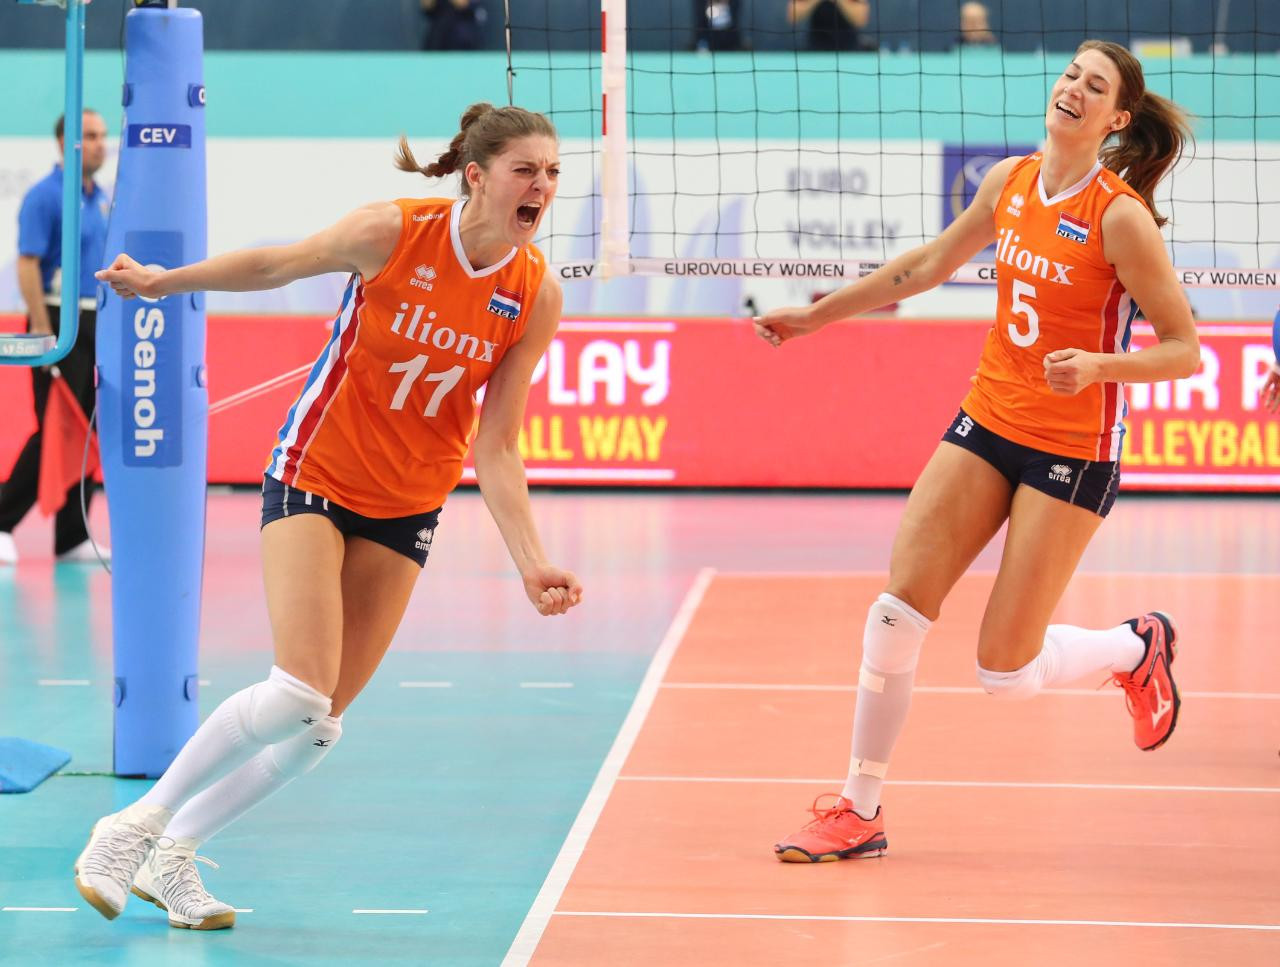 The Netherlands beat hosts Azerbaijan to reach the gold medal match ©CEV